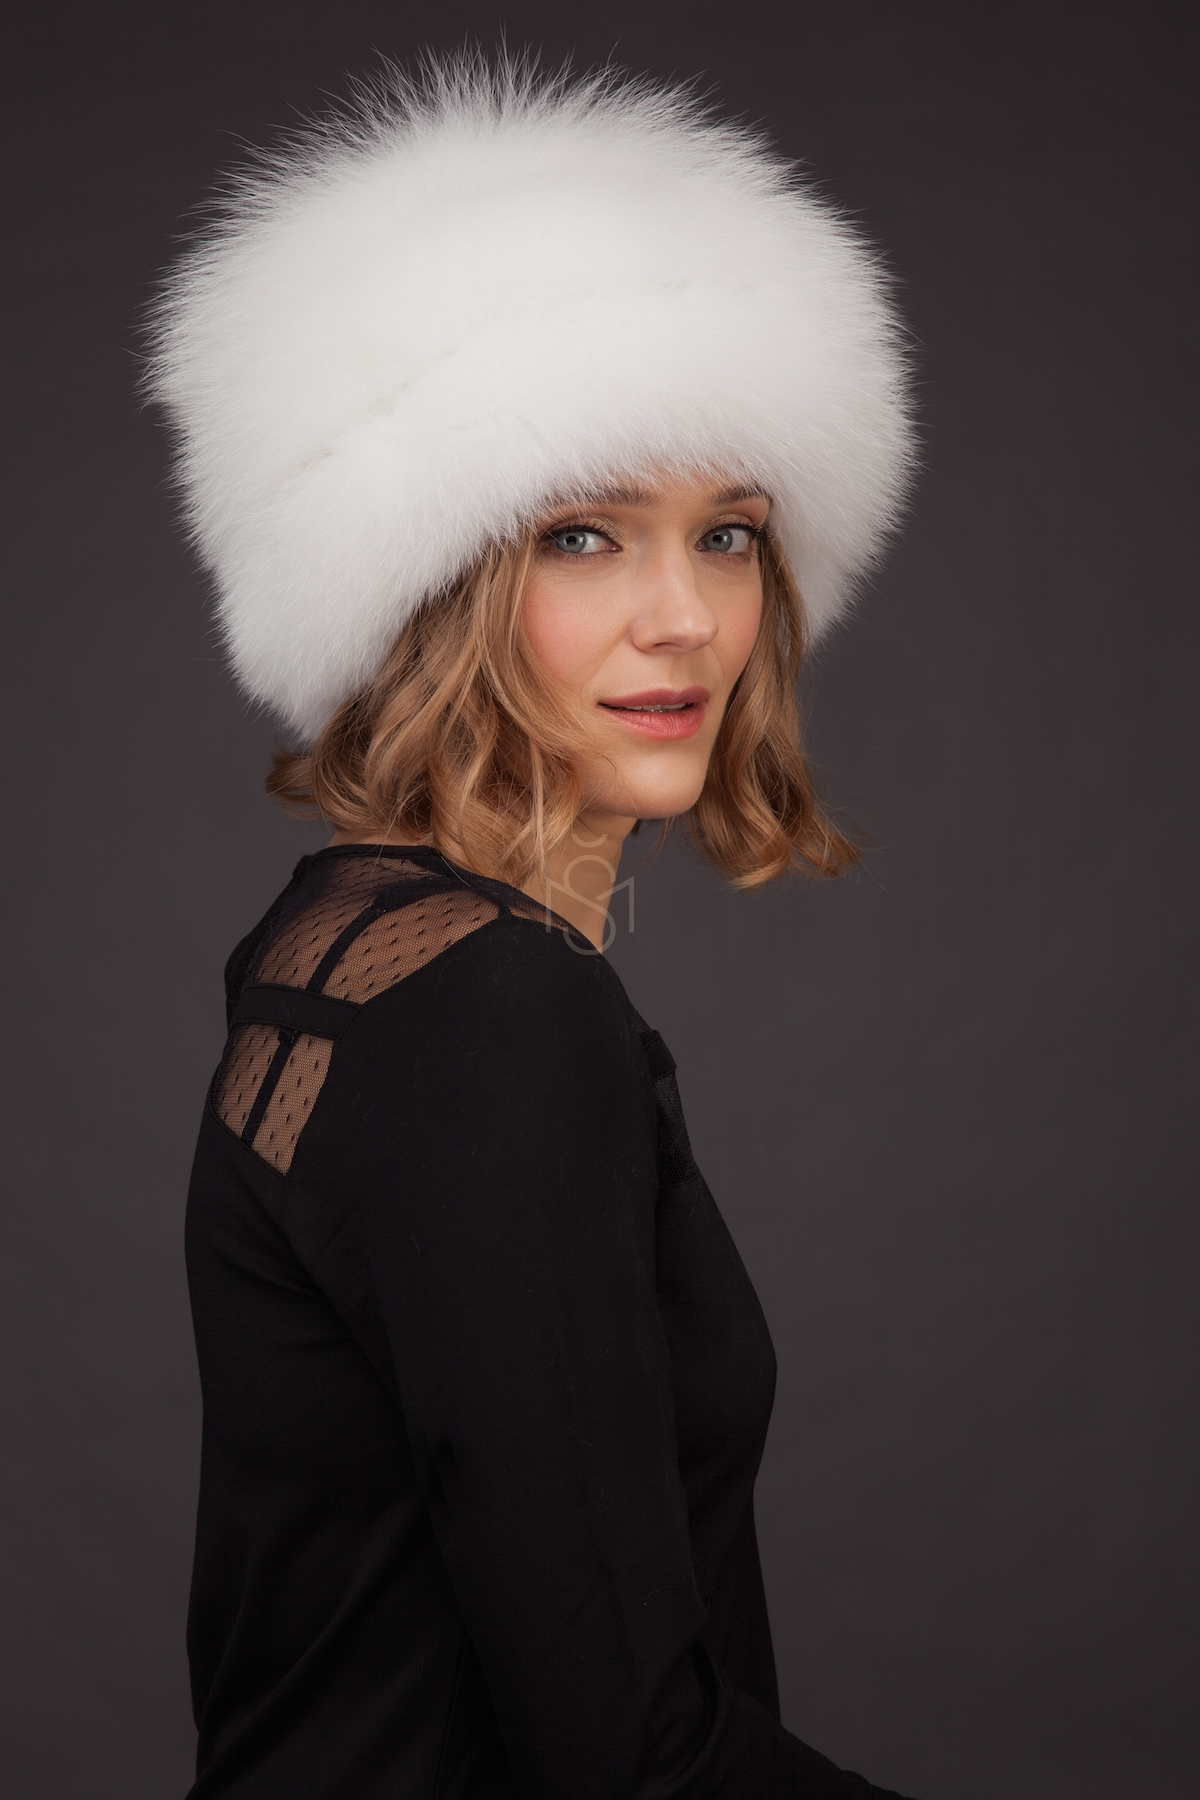 d1d033a0cb7 Fox fur hat with leather inserts made by SILTA MADA fur studio in Vilnius  ...